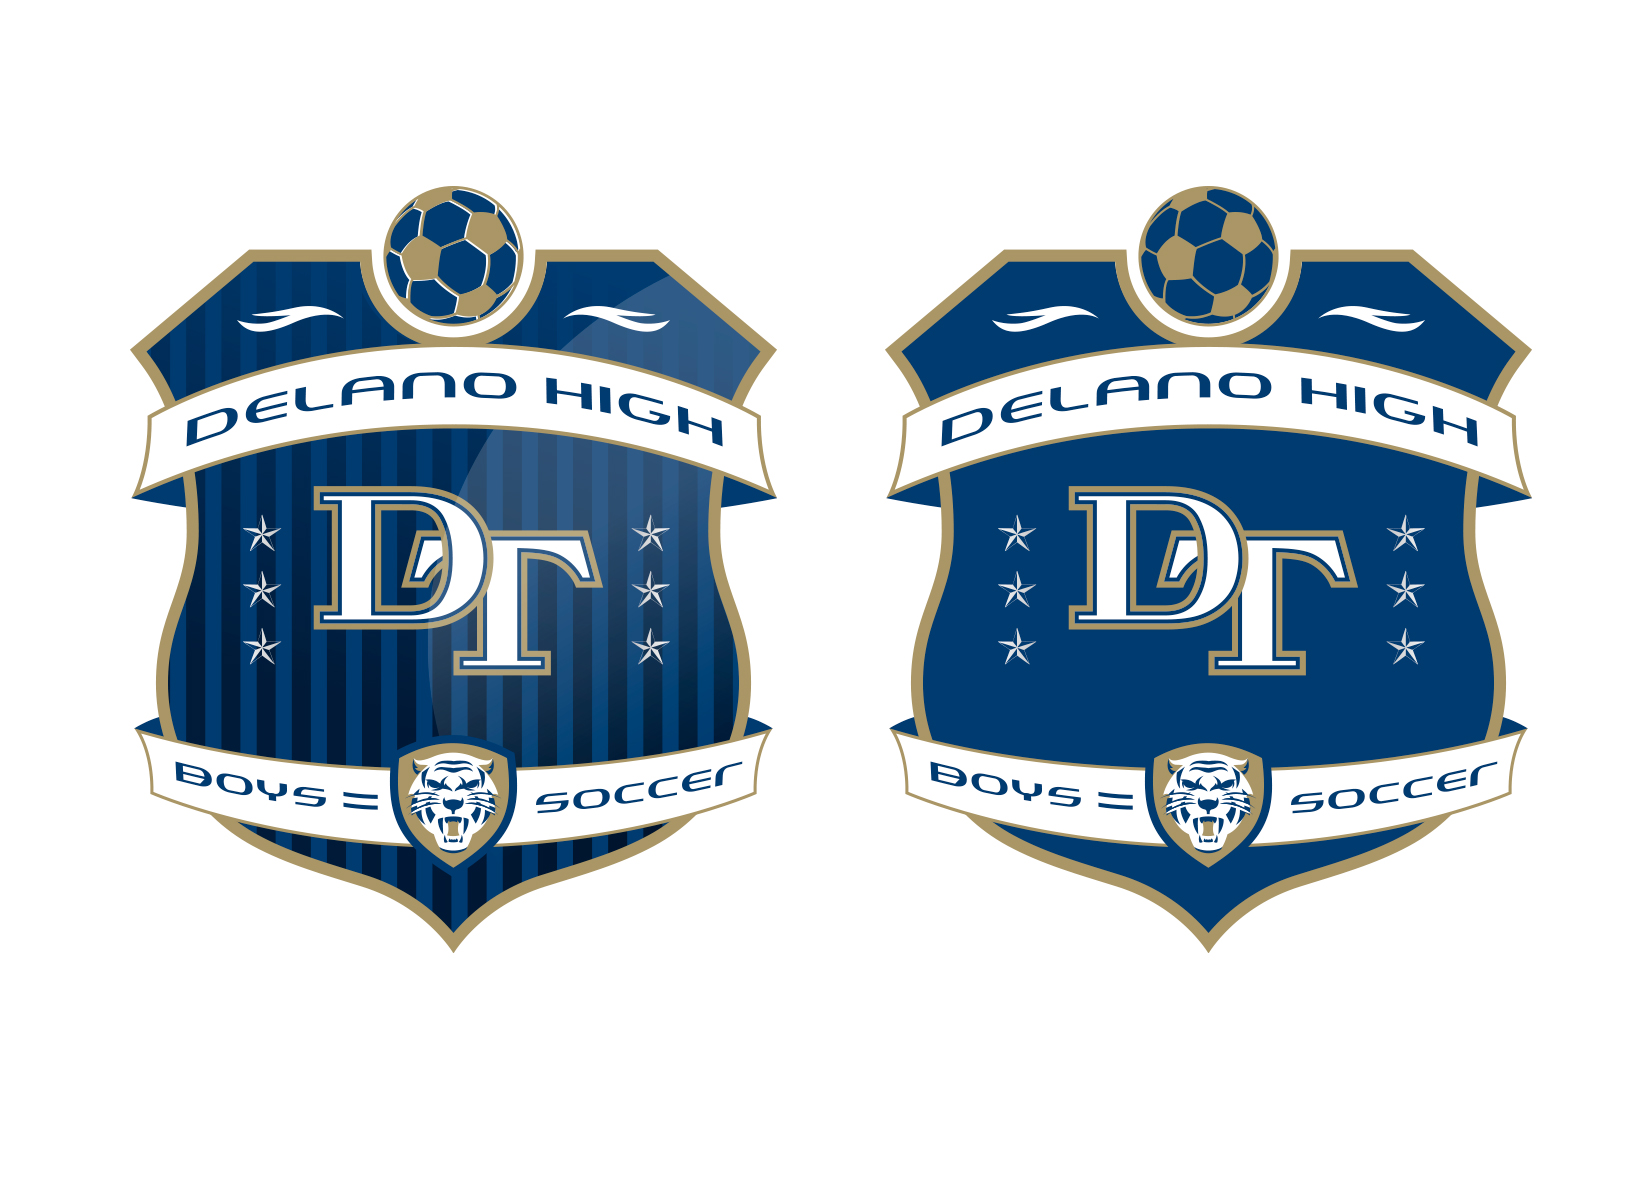 custom-soccer-crest-design-for-delano-high-school-soccer-1.jpg